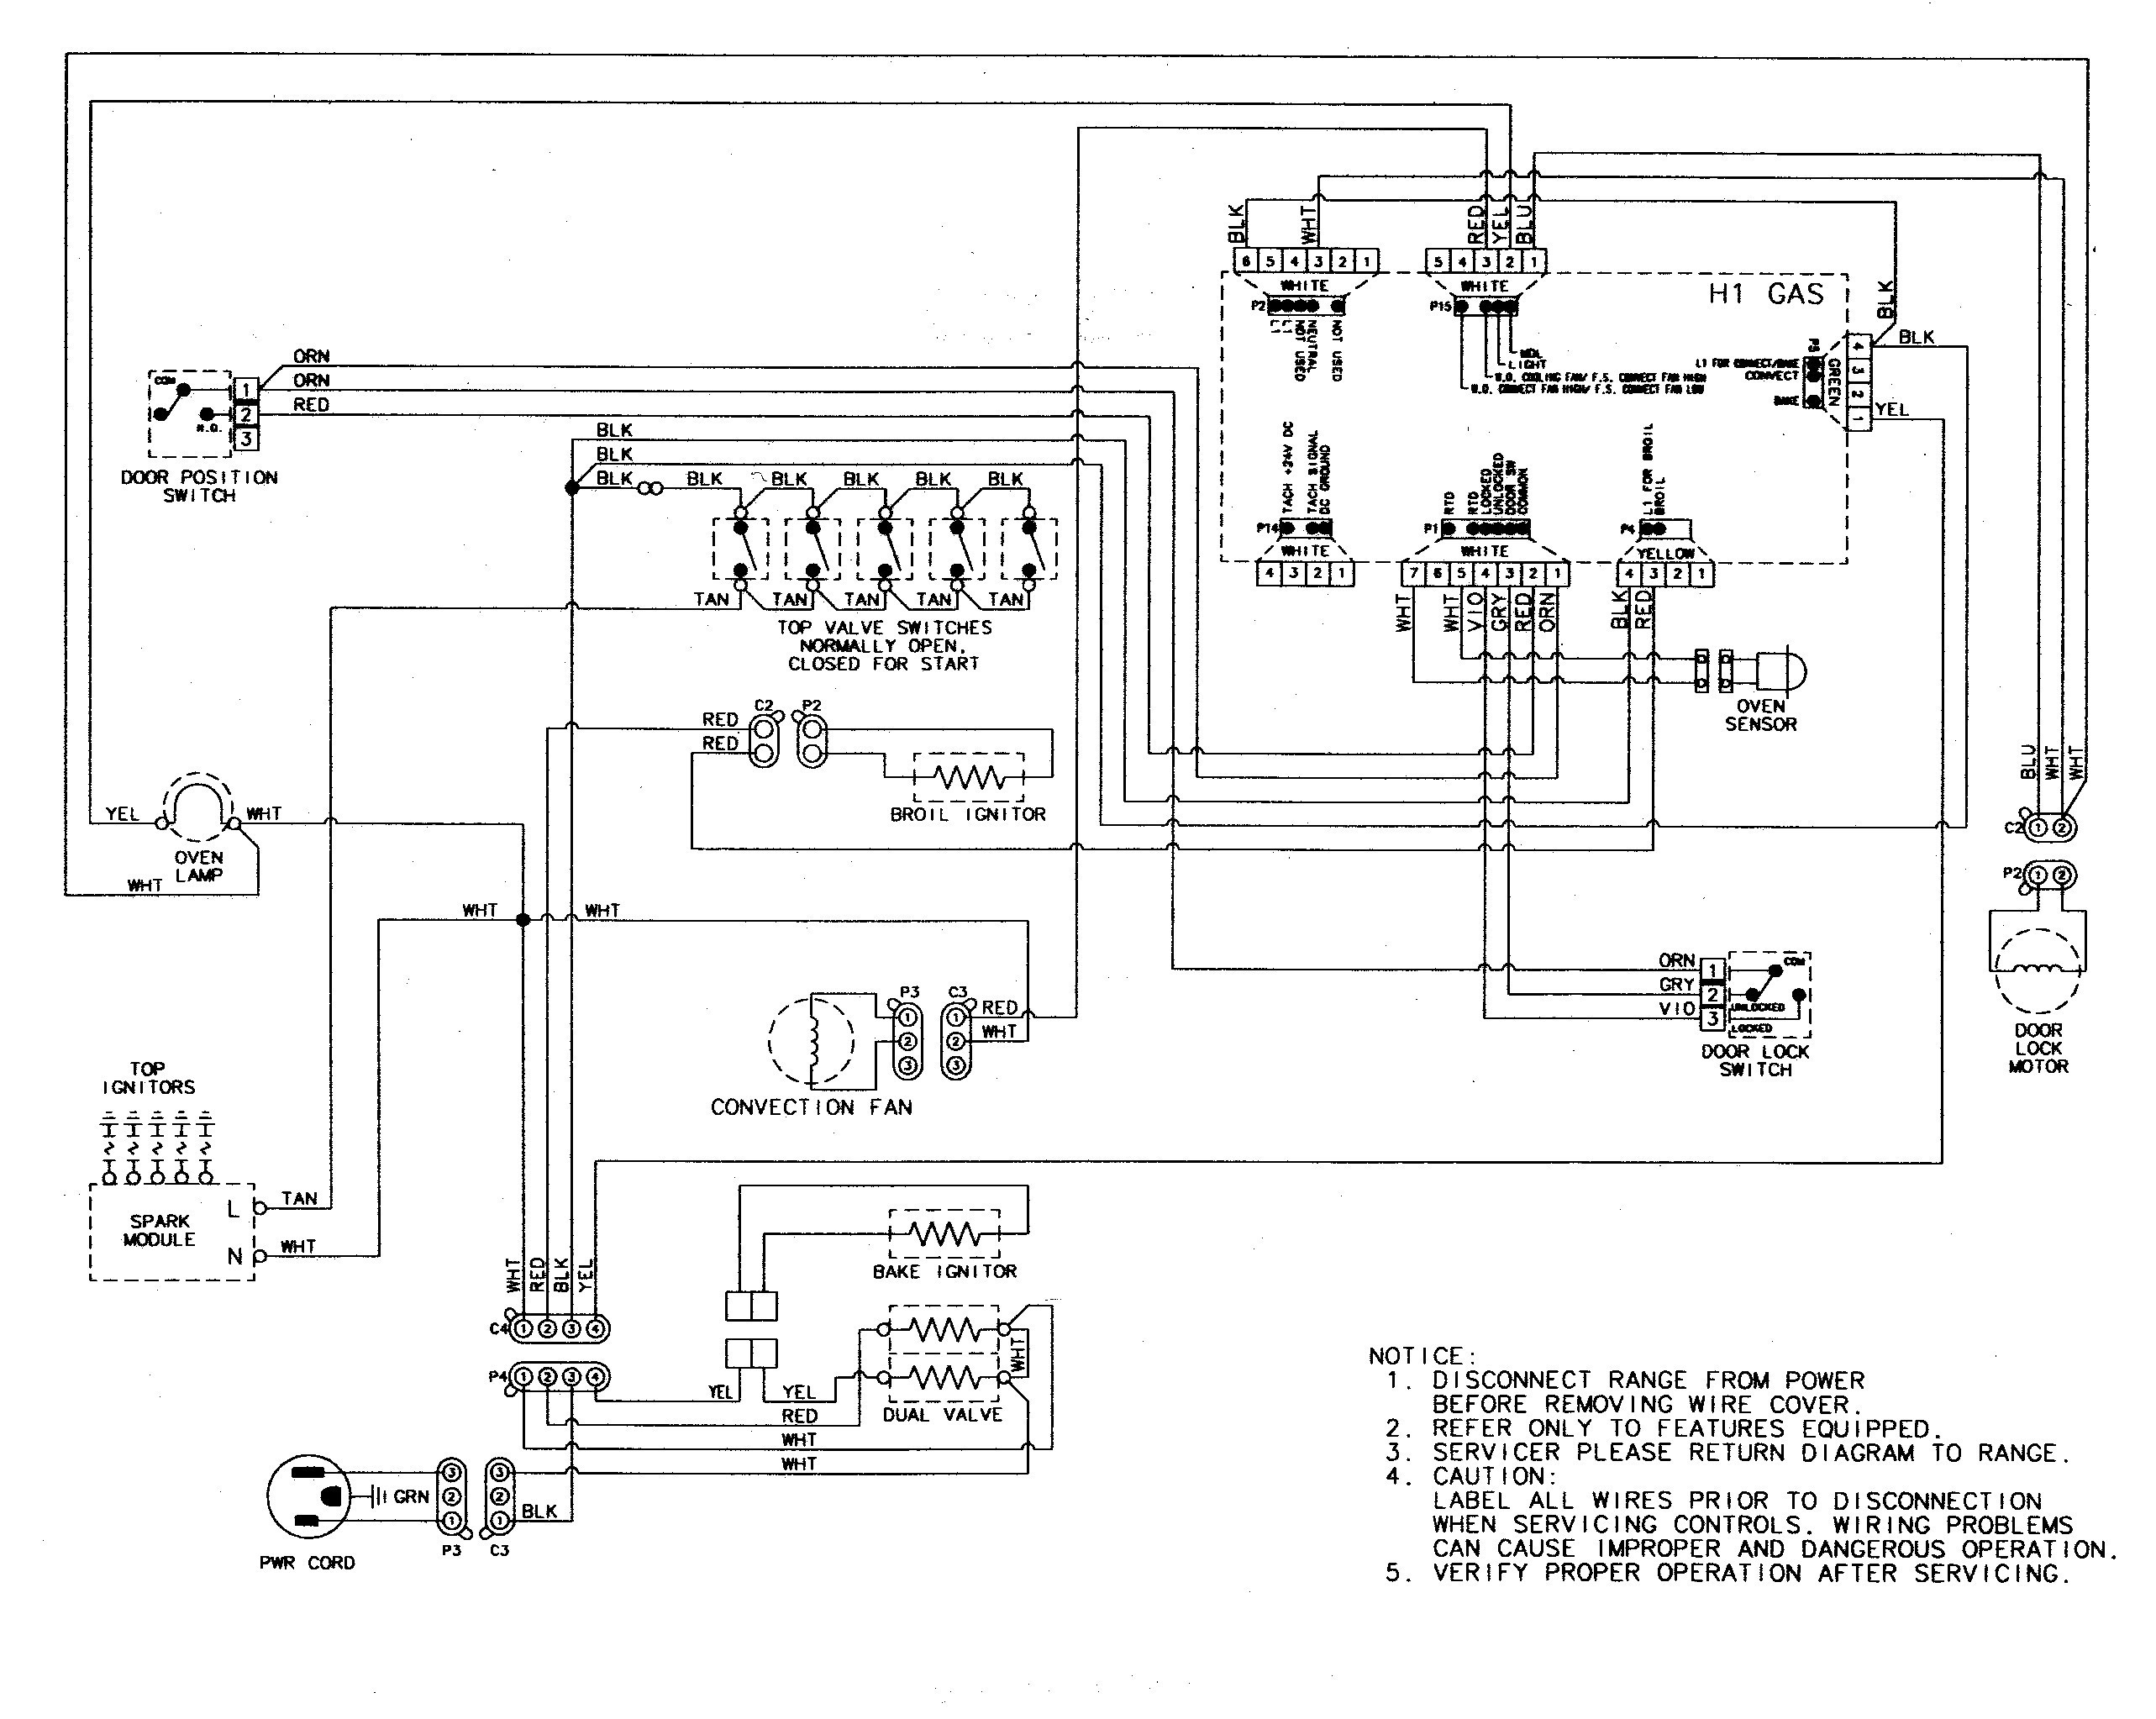 jackpot wiring diagram electrical schematic wiring diagram Basic Electrical Wiring Diagrams